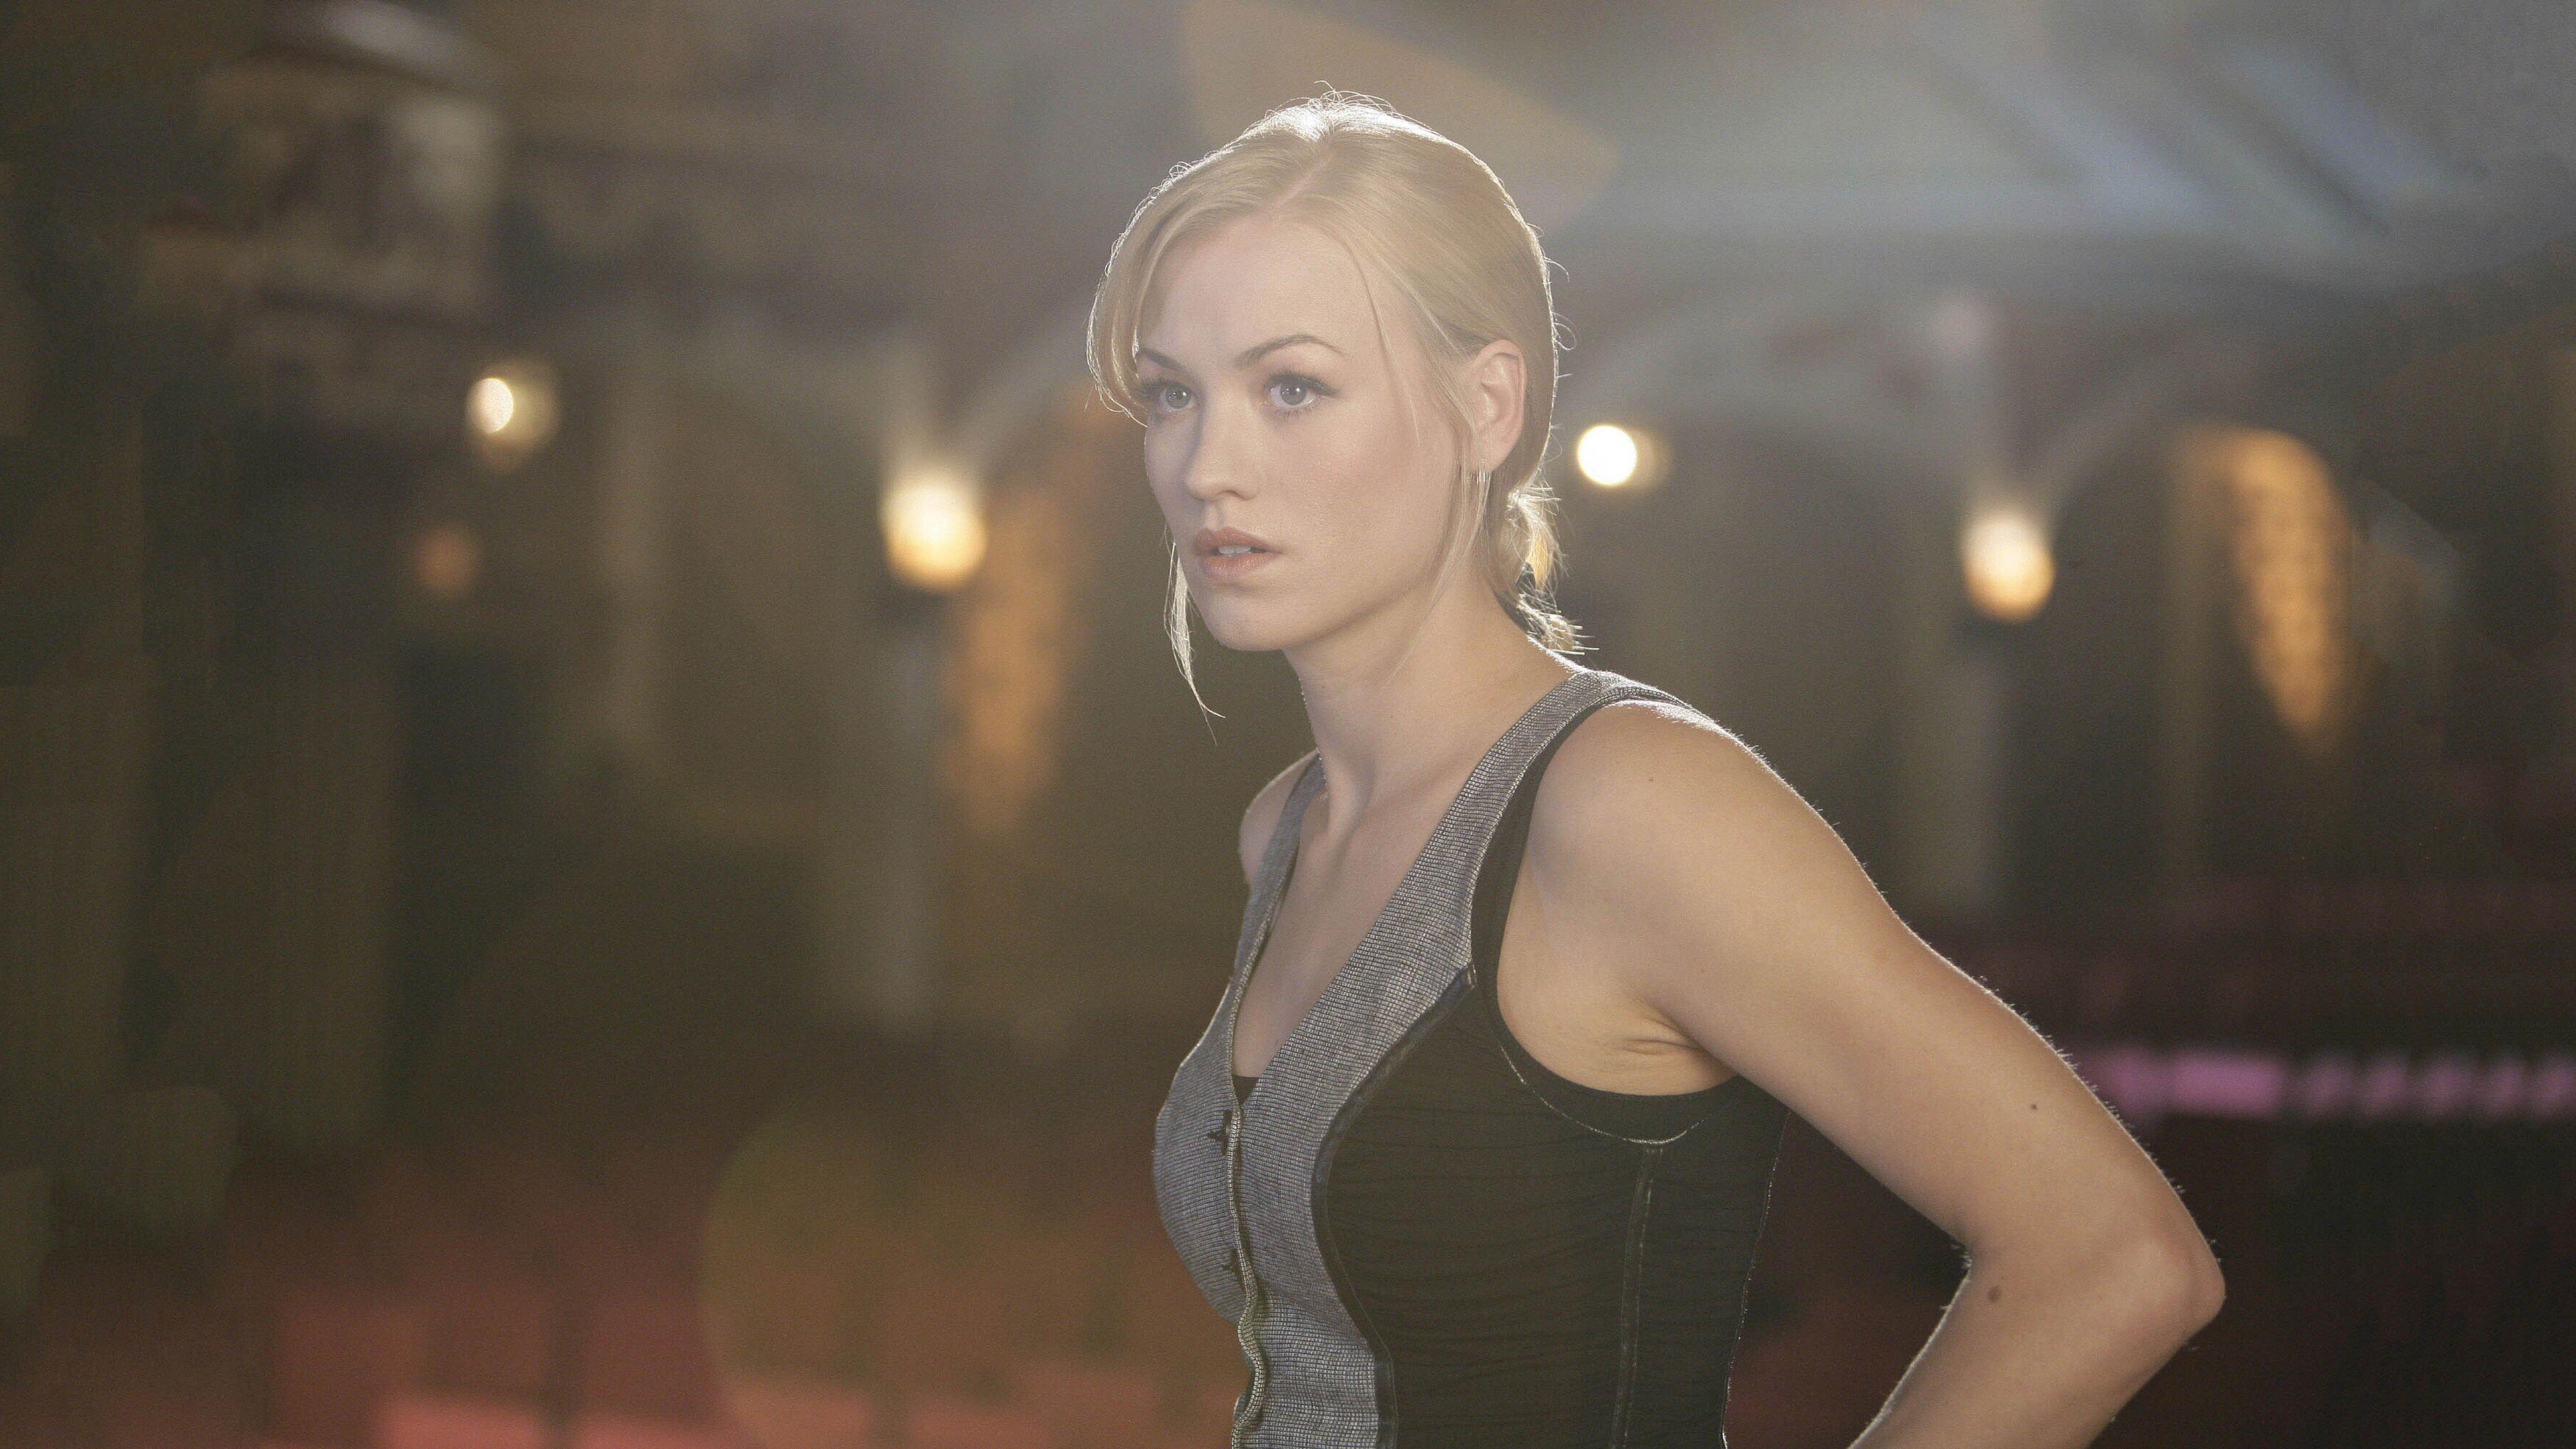 yvonne strahovski wallpapers 03 GotCeleb Wallpapers 3840x2160